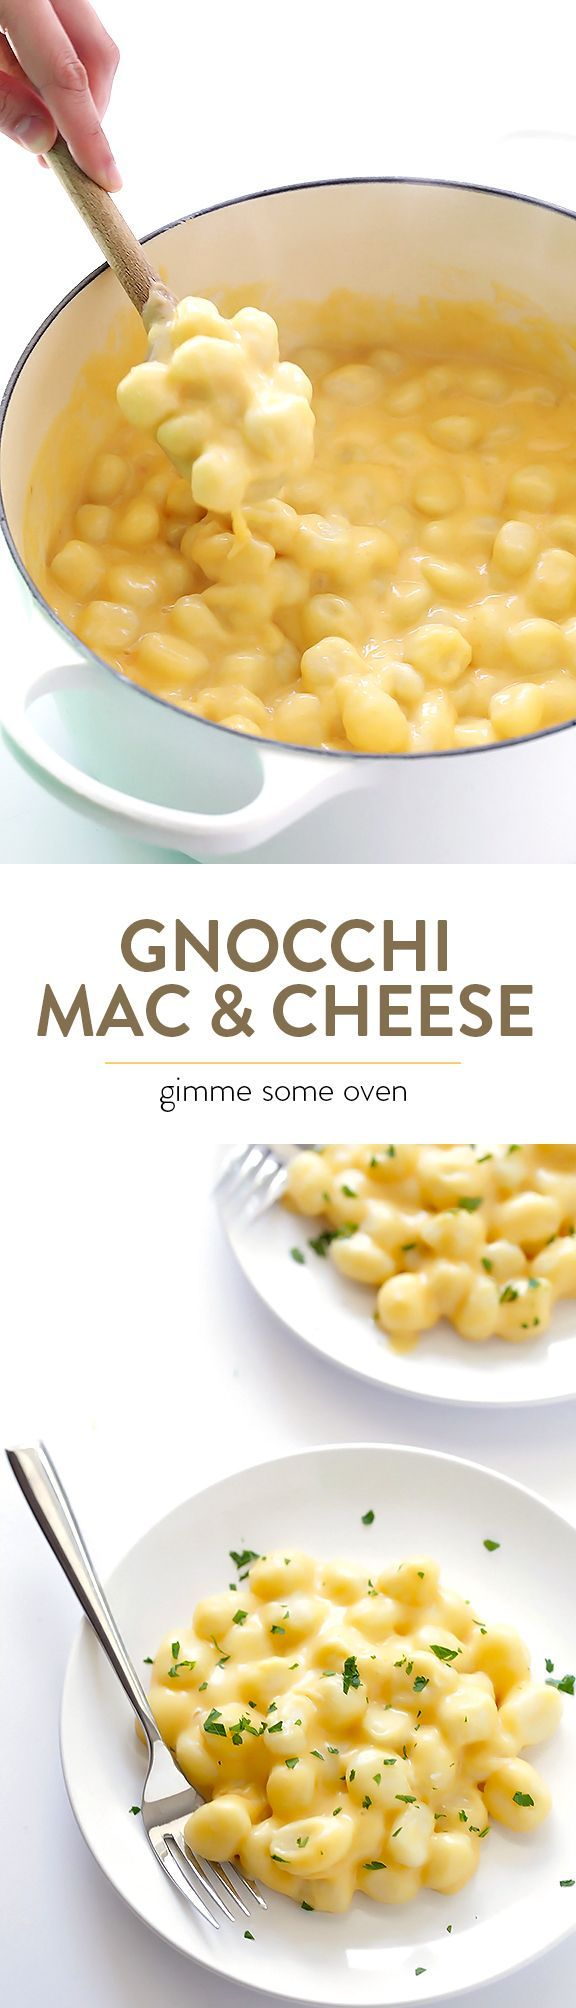 Swap out chewy and delicious gnocchi in place of noodles to make this super tasty mac and cheese! With GF gnocchi, it's also naturally gluten-free.